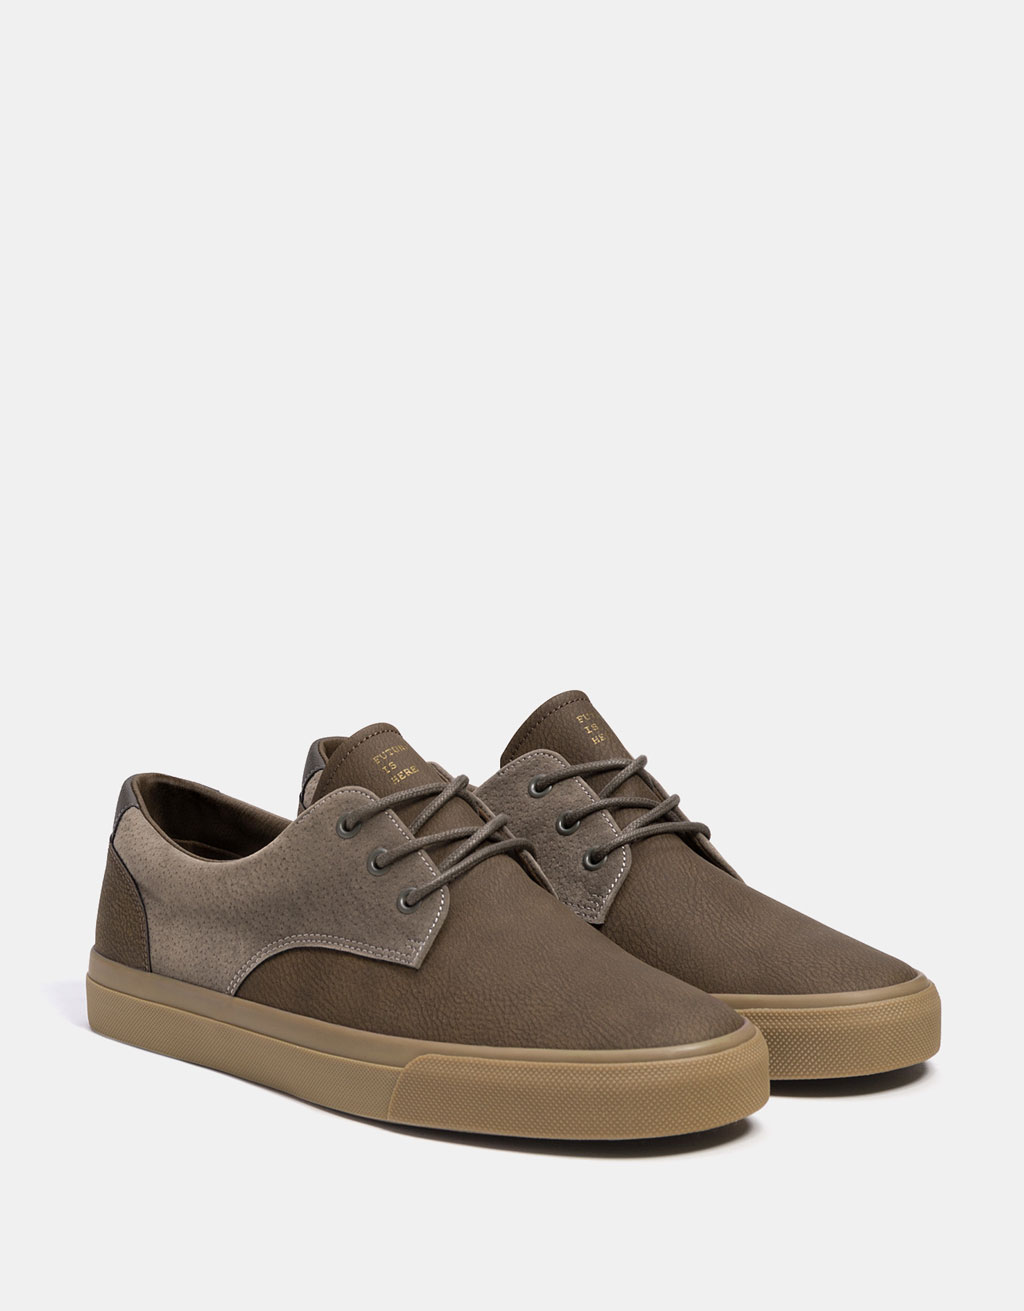 Men's combined sneakers with caramel colored soles